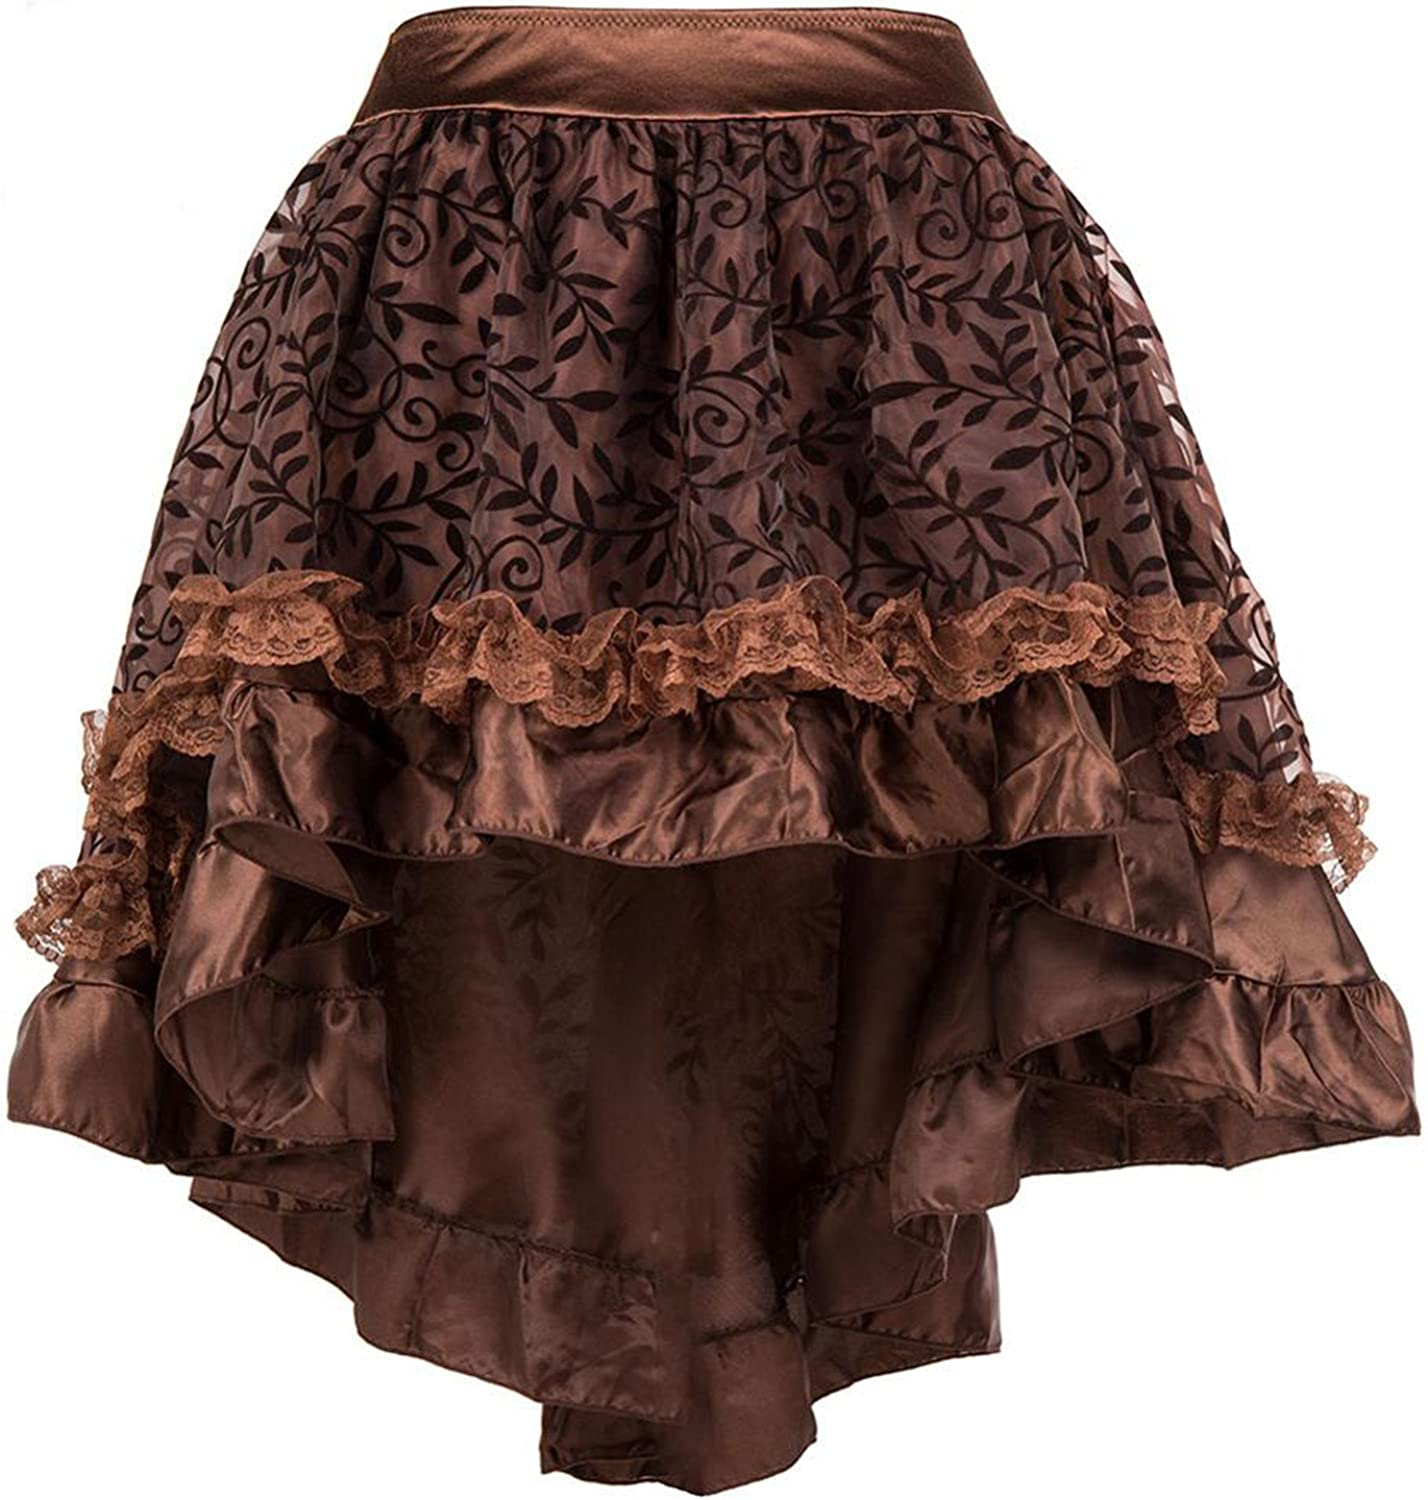 Naomiky S6XL Brown Asymmetrical Floral Tulle Ruffled Satin & Lace Trim Skirts Womens Vintage Steampunk Clothing Skirt